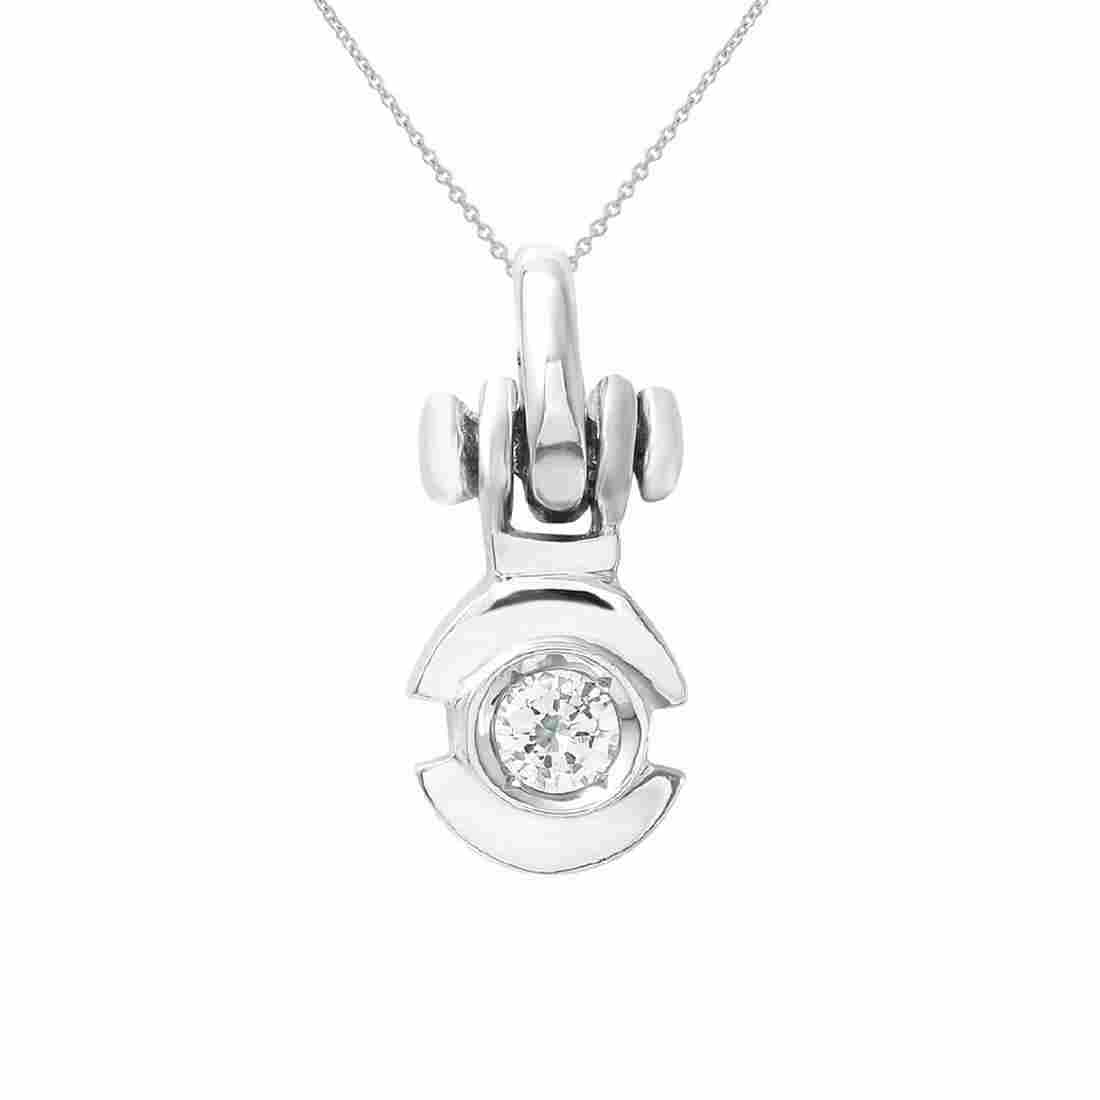 18KT White Gold 0.19ct Diamond Pendant with Chain